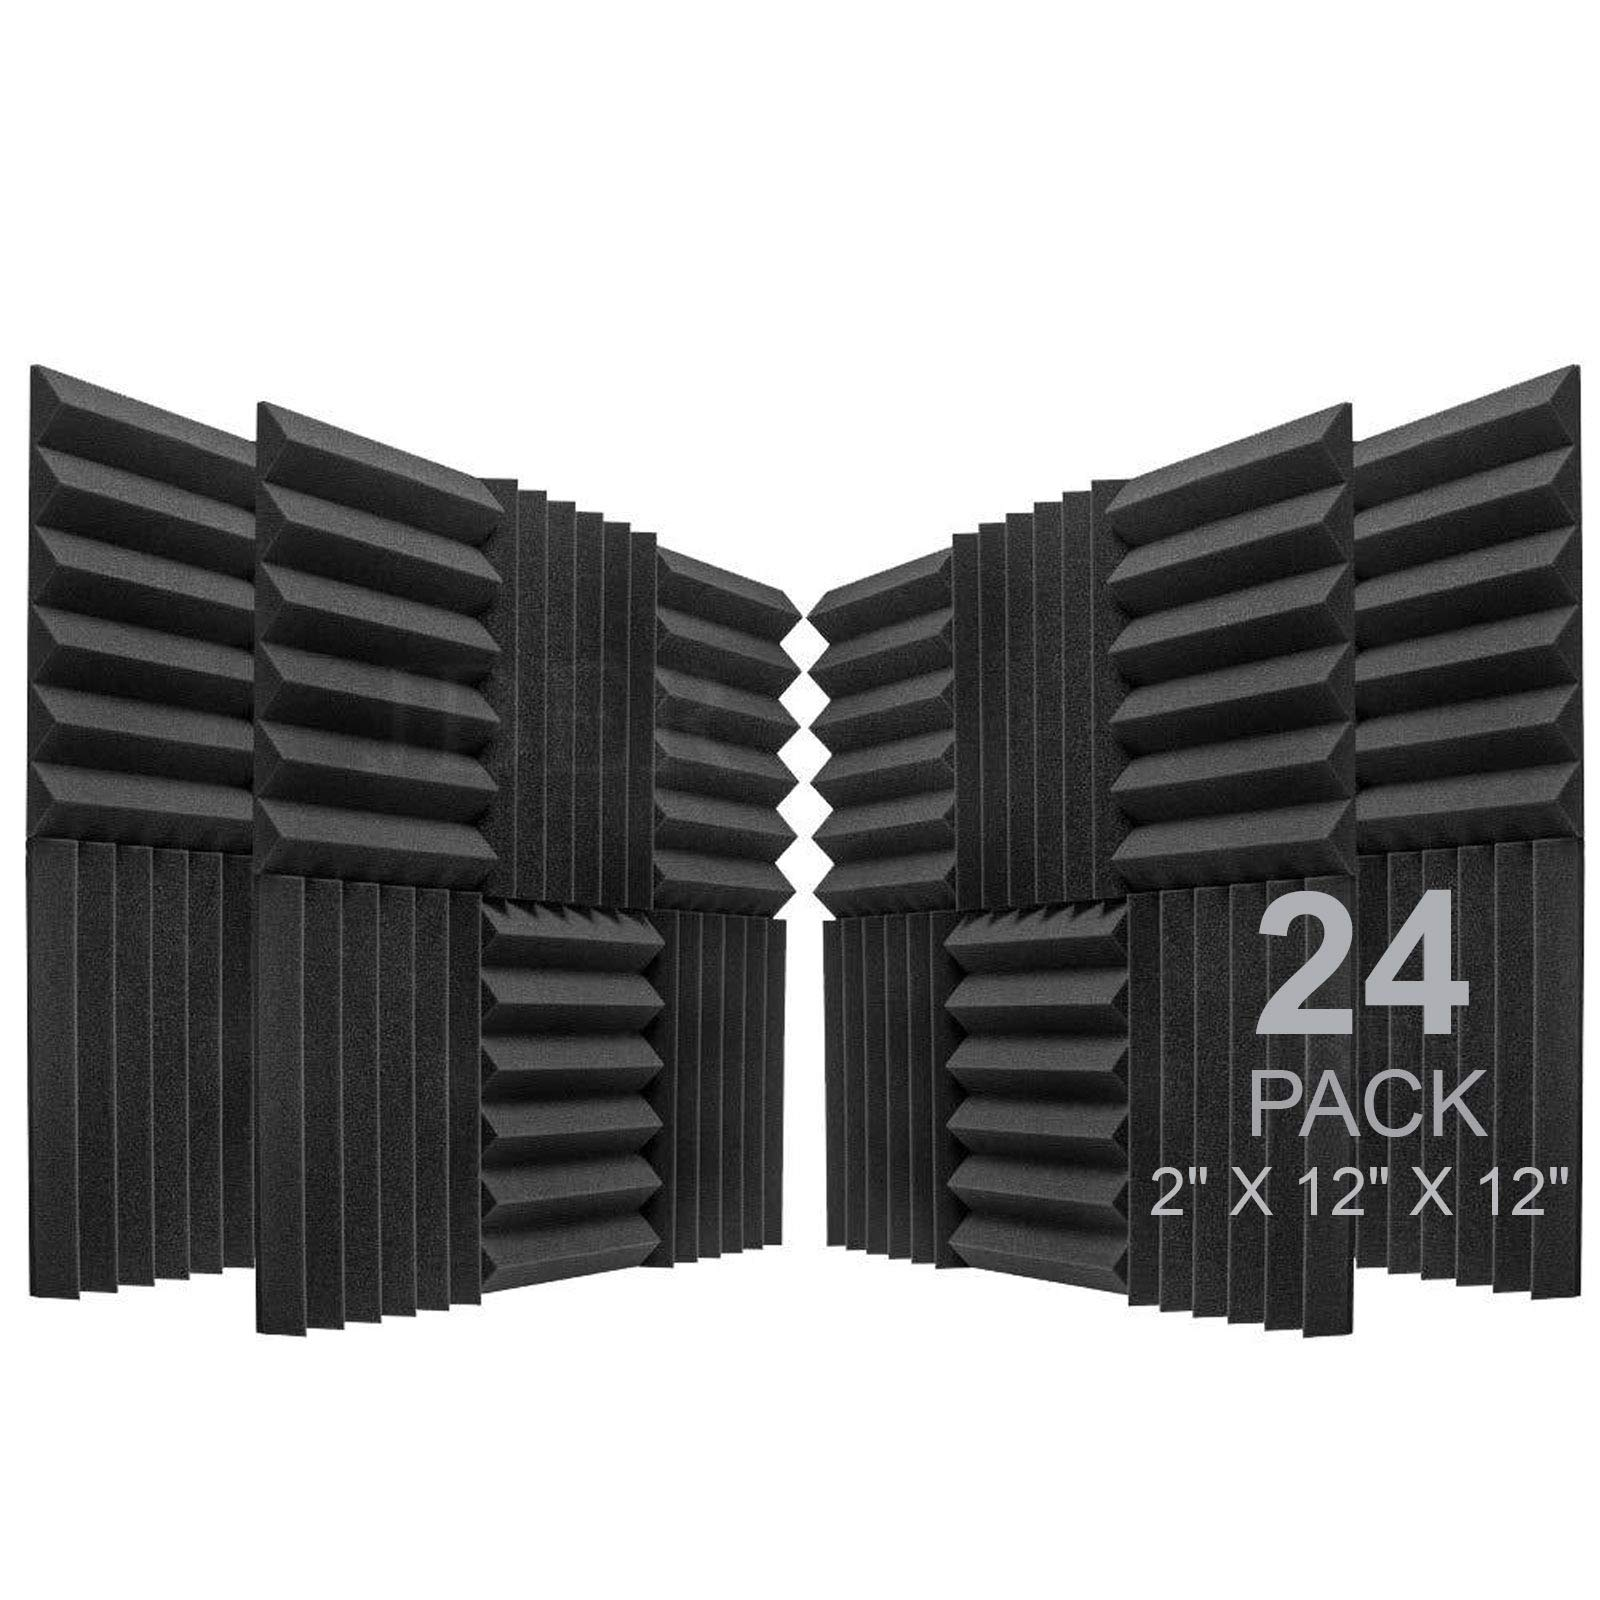 Acoustic Foam Panels Fireproof Sound Absorbing Panels Studio Foam Wedges for Walls 2 X 12 X 12 12 Pack Blue black